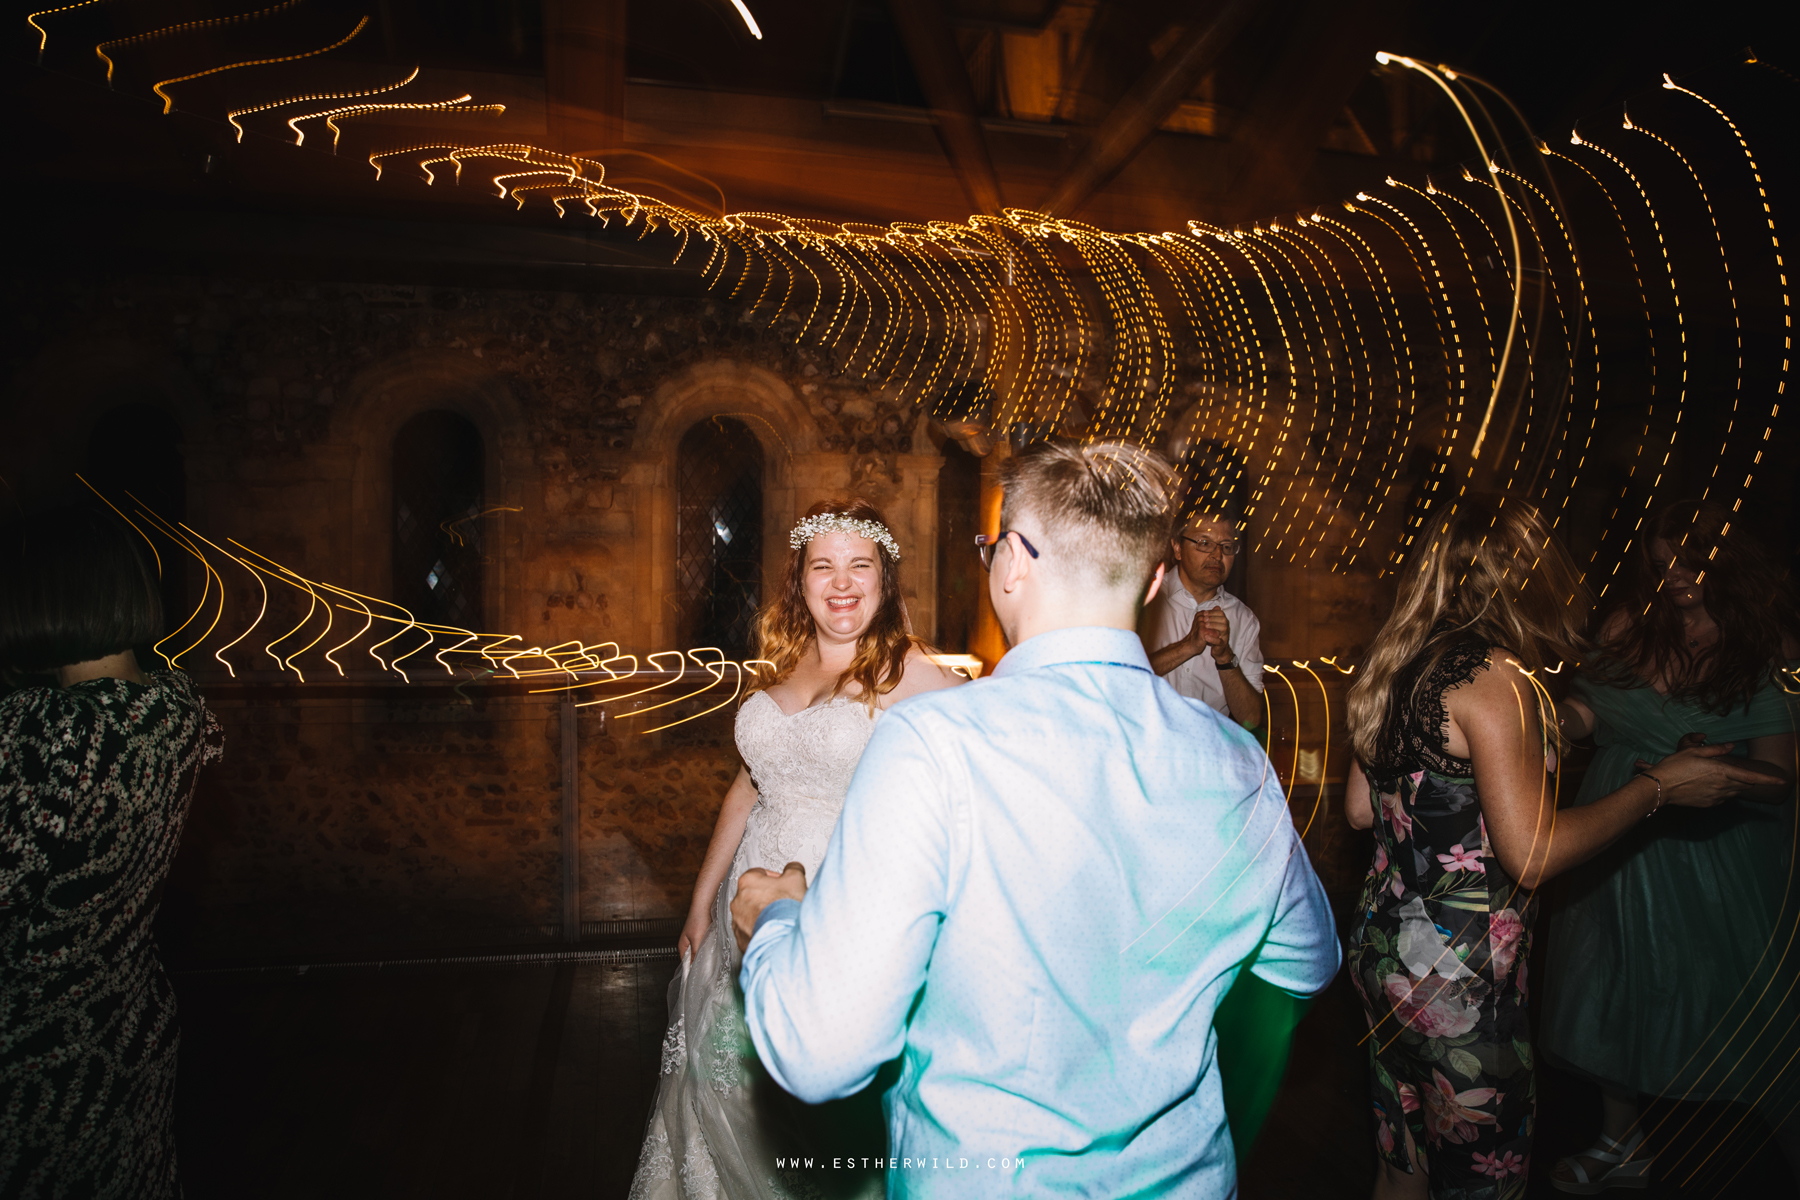 Norwich_Castle_Arcade_Grosvenor_Chip_Birdcage_Cathedral_Cloisters_Refectory_Wedding_Photography_Esther_Wild_Photographer_Norfolk_Kings_Lynn_3R8A3432.jpg